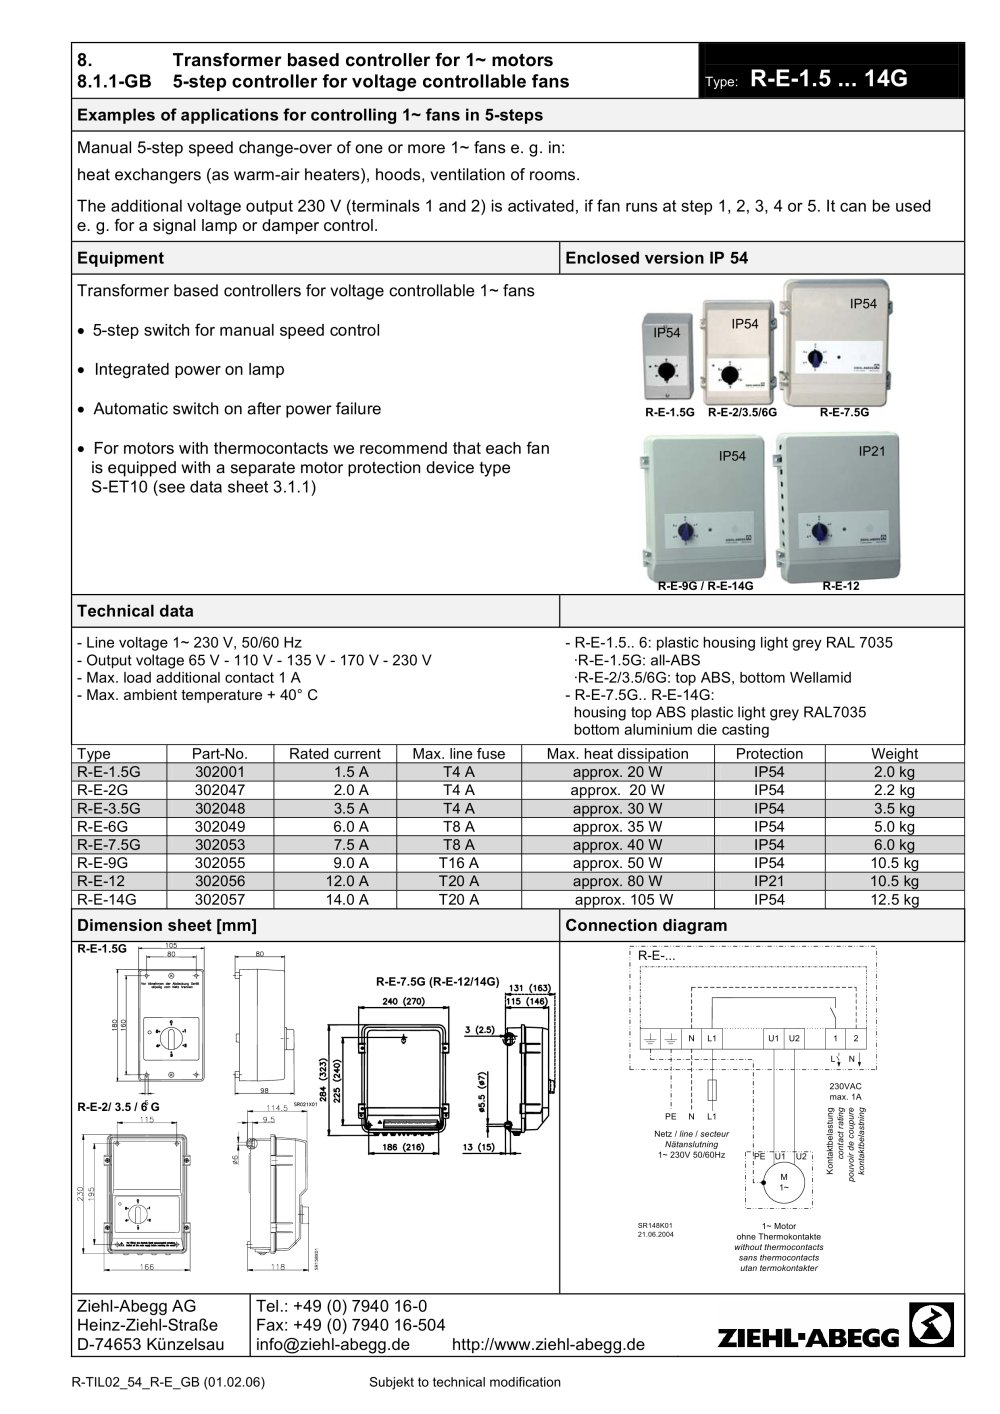 r e1514g 171775_1b r e1 5 14g ziehl abegg pdf catalogue technical ziehl abegg wiring diagram at reclaimingppi.co